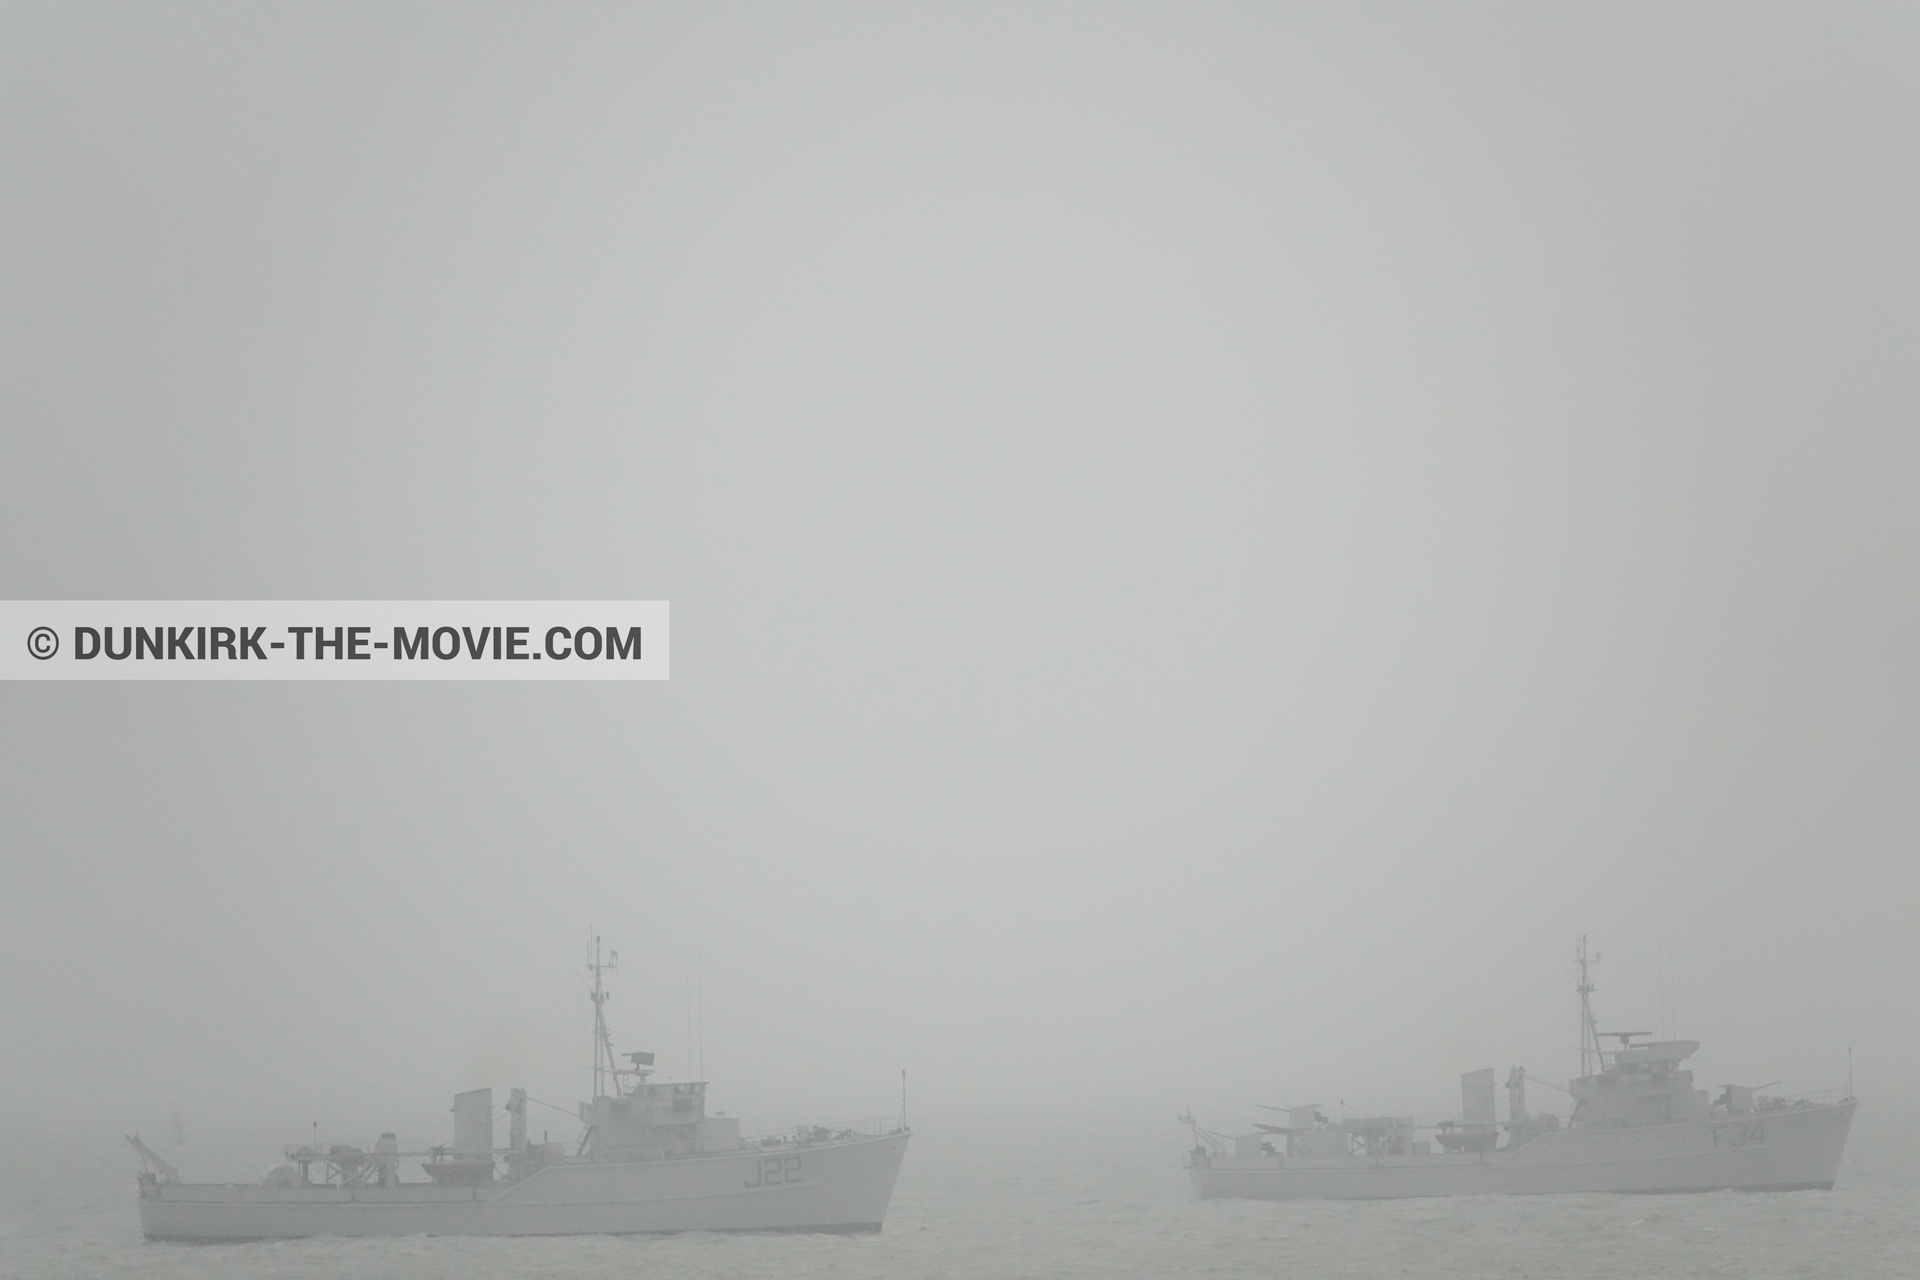 Picture with grey sky, F34 - Hr.Ms. Sittard, J22 -Hr.Ms. Naaldwijk, calm sea,  from behind the scene of the Dunkirk movie by Nolan